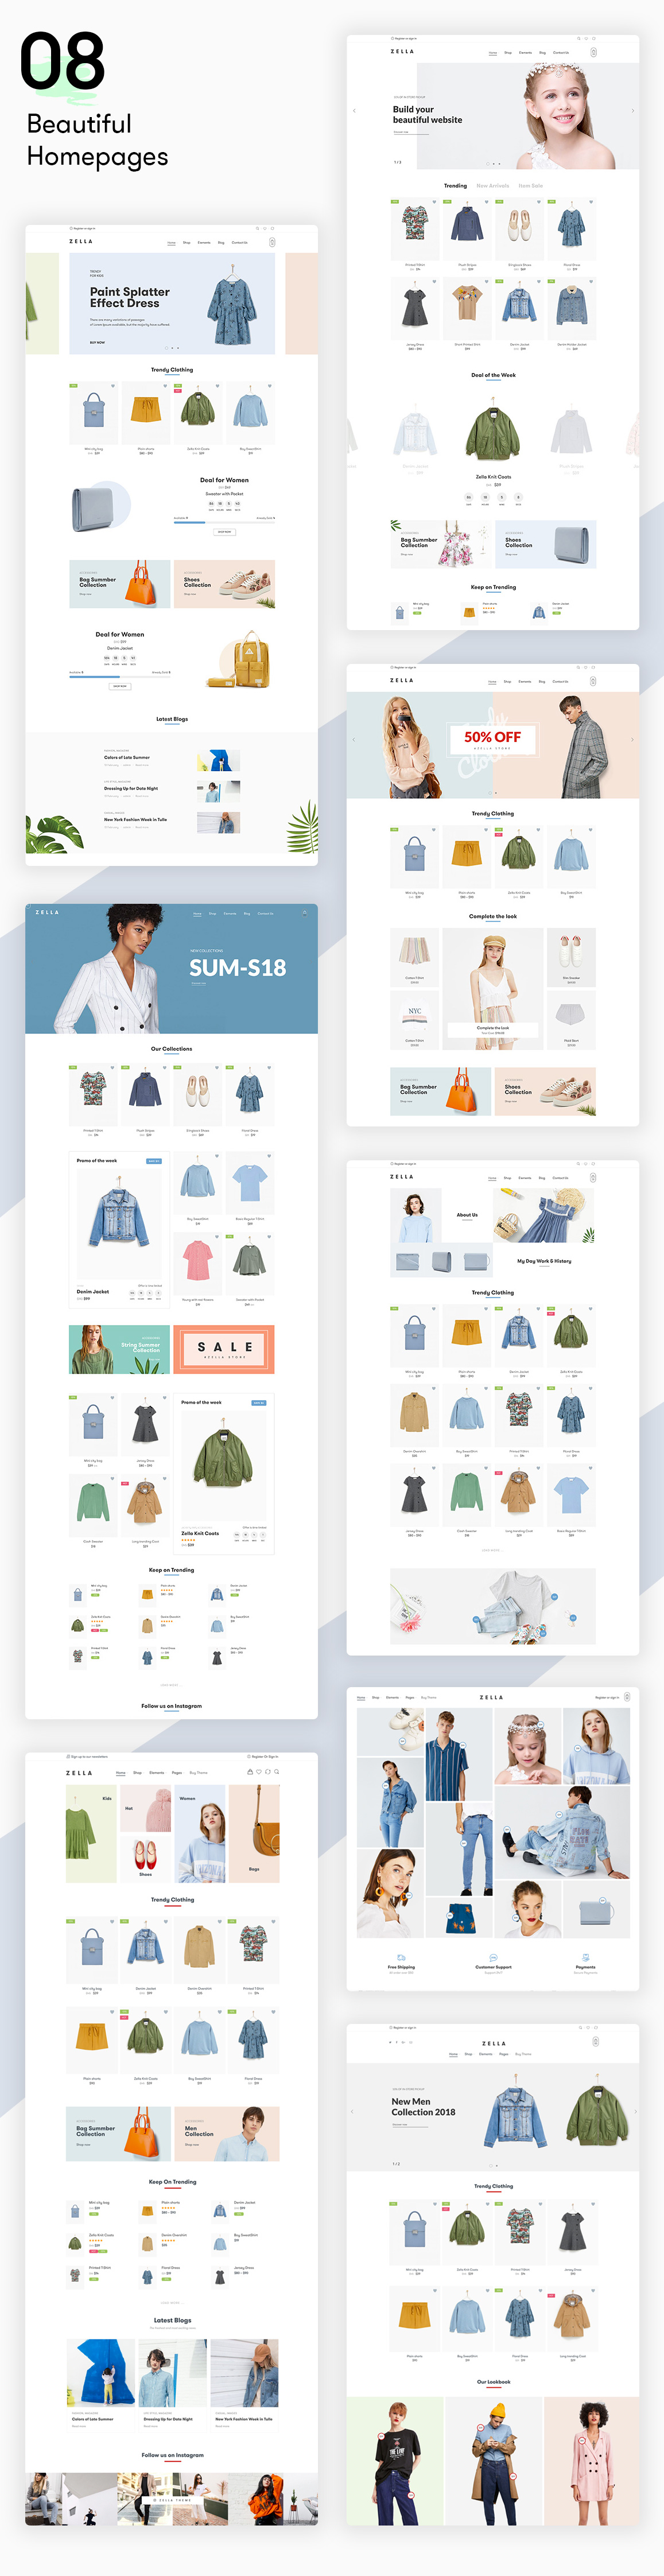 Zella - WooCommerce AJAX WordPress主题 - RTL支持 - 4